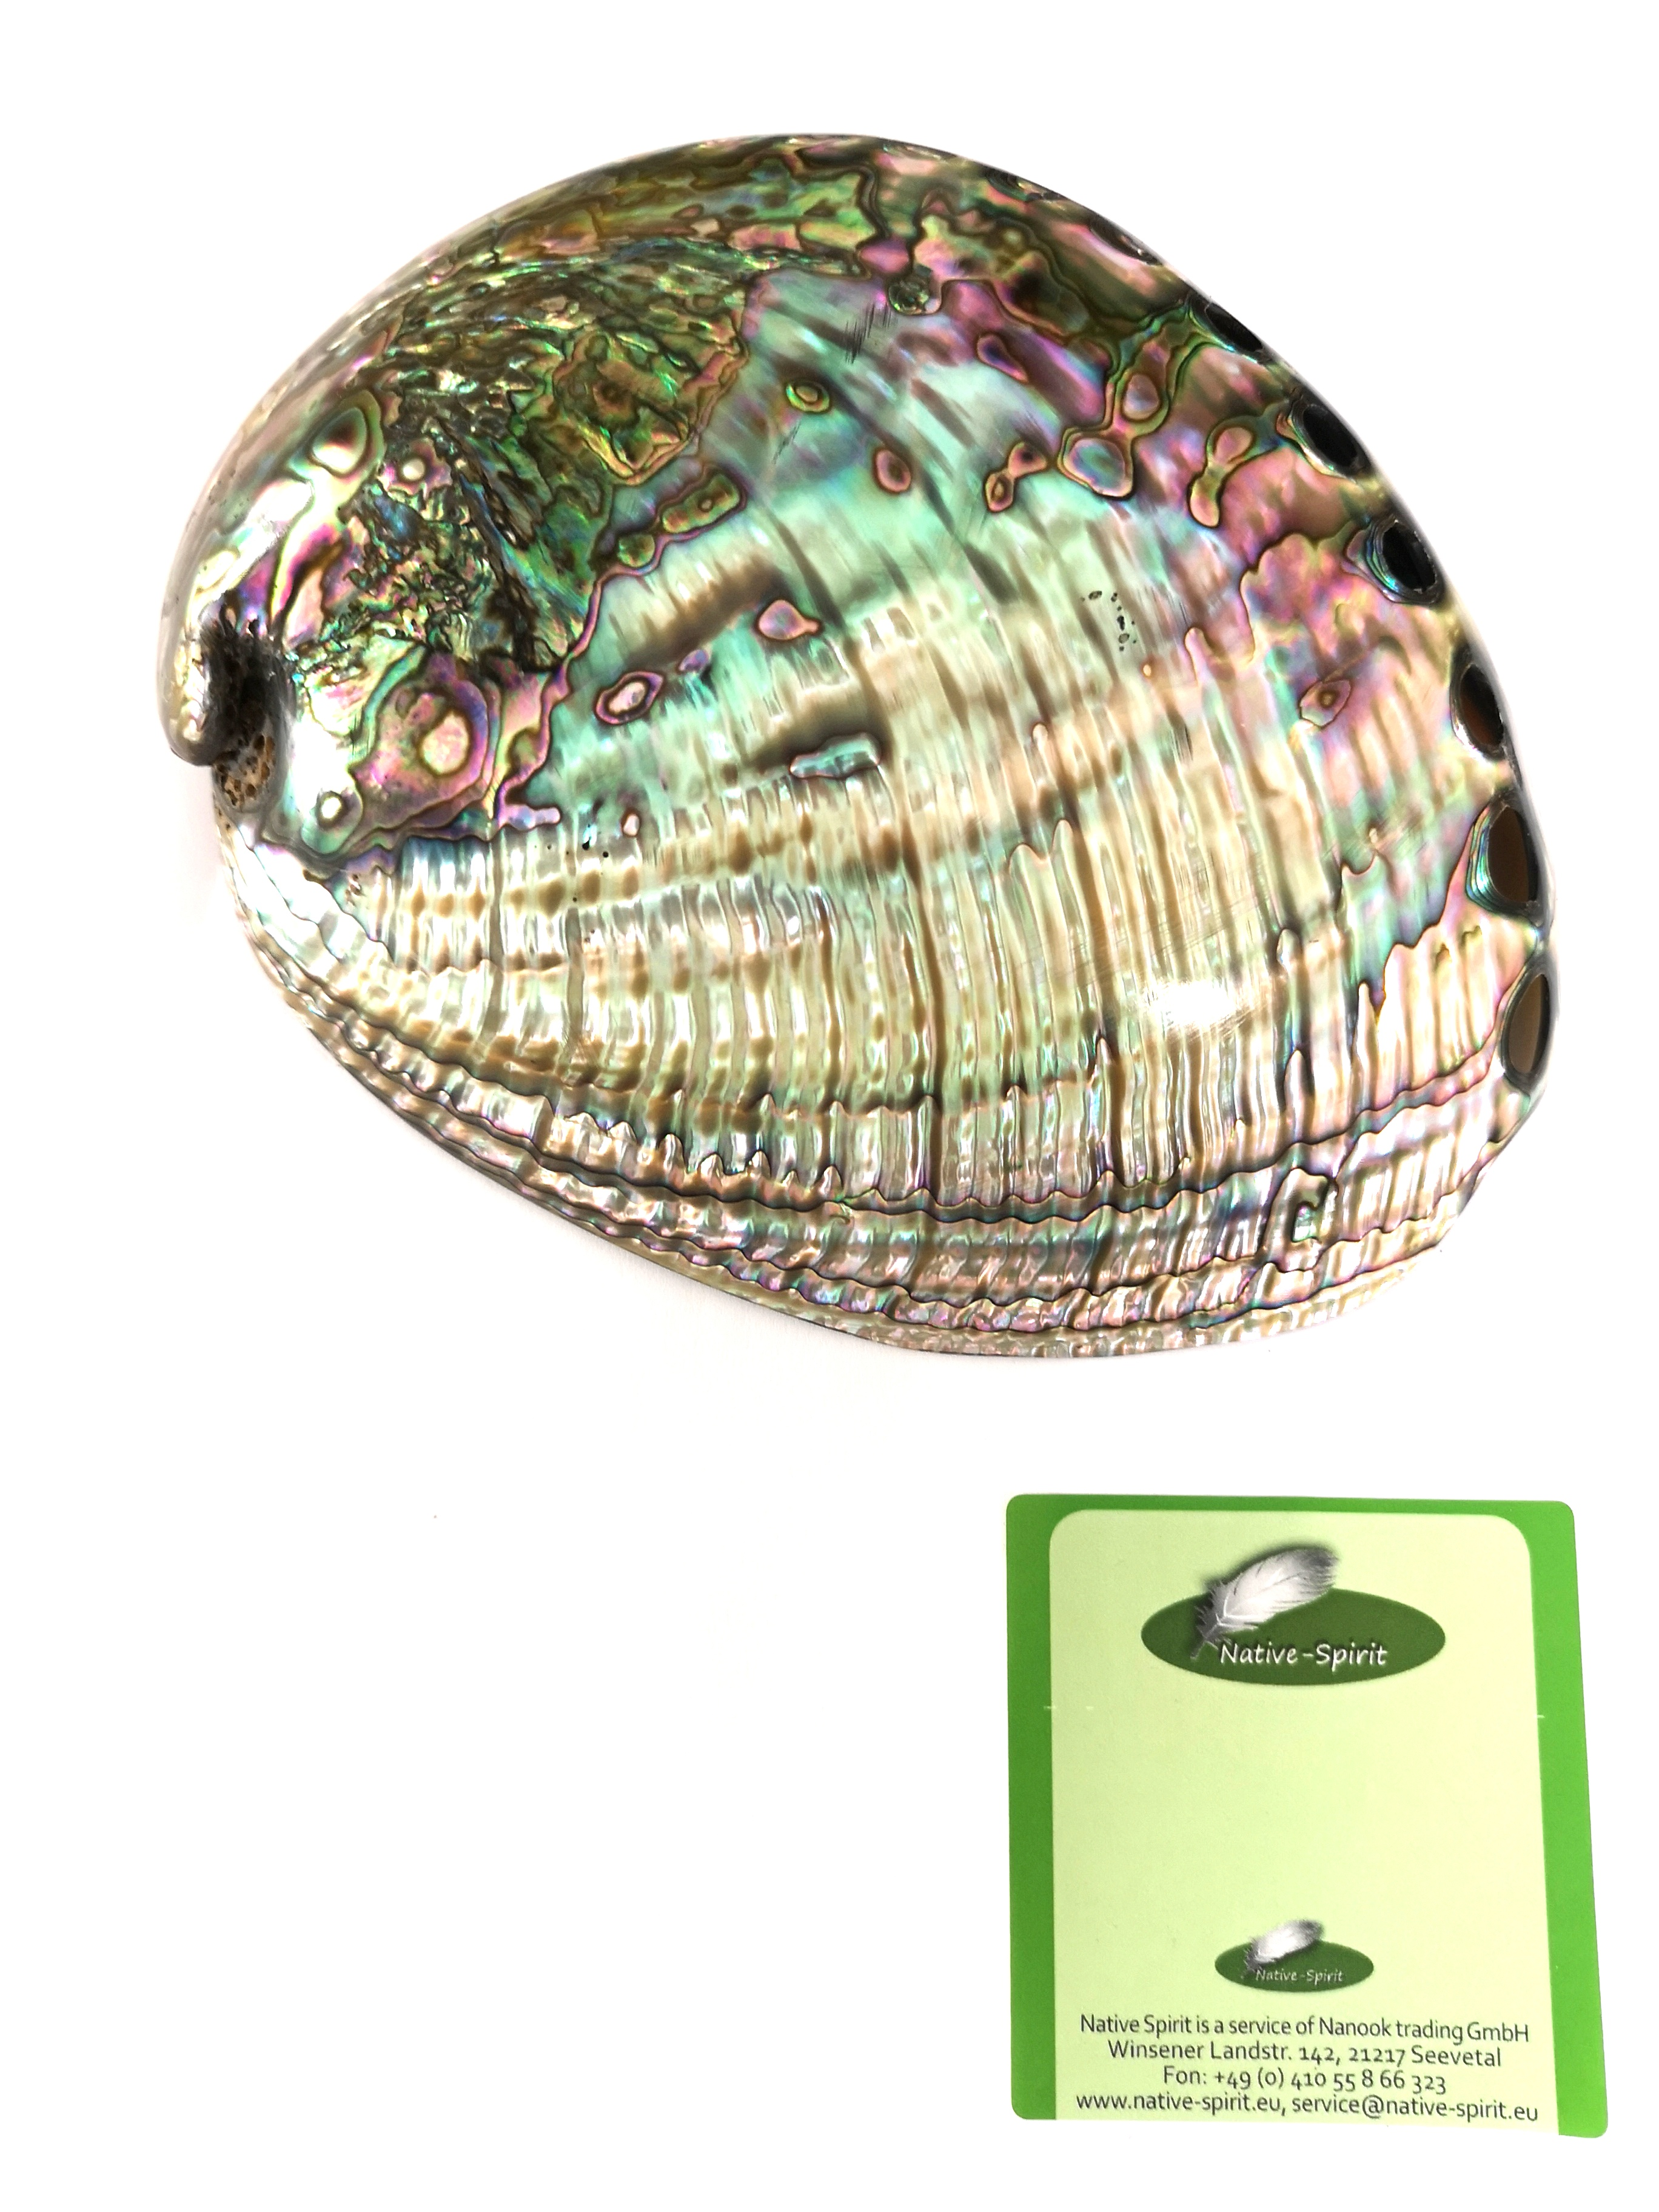 Abalone-Schale, auch außen poliert, 15-18 cm, Beautifull polished Abalone Shells (6-7 Inch, also out